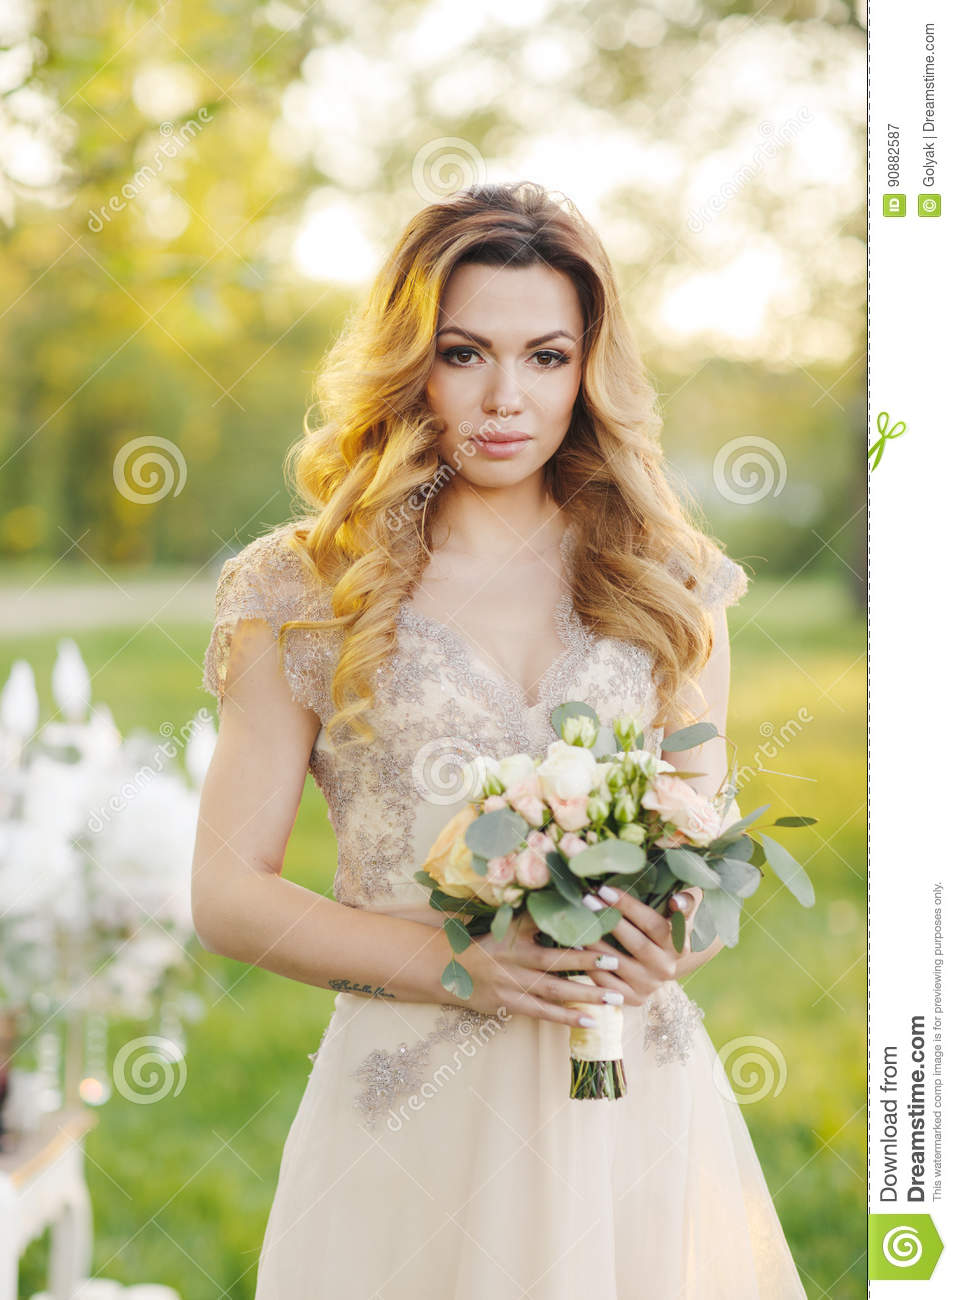 Beautiful Bride Outdoors In A Wedding Dress Stock Image Image Of